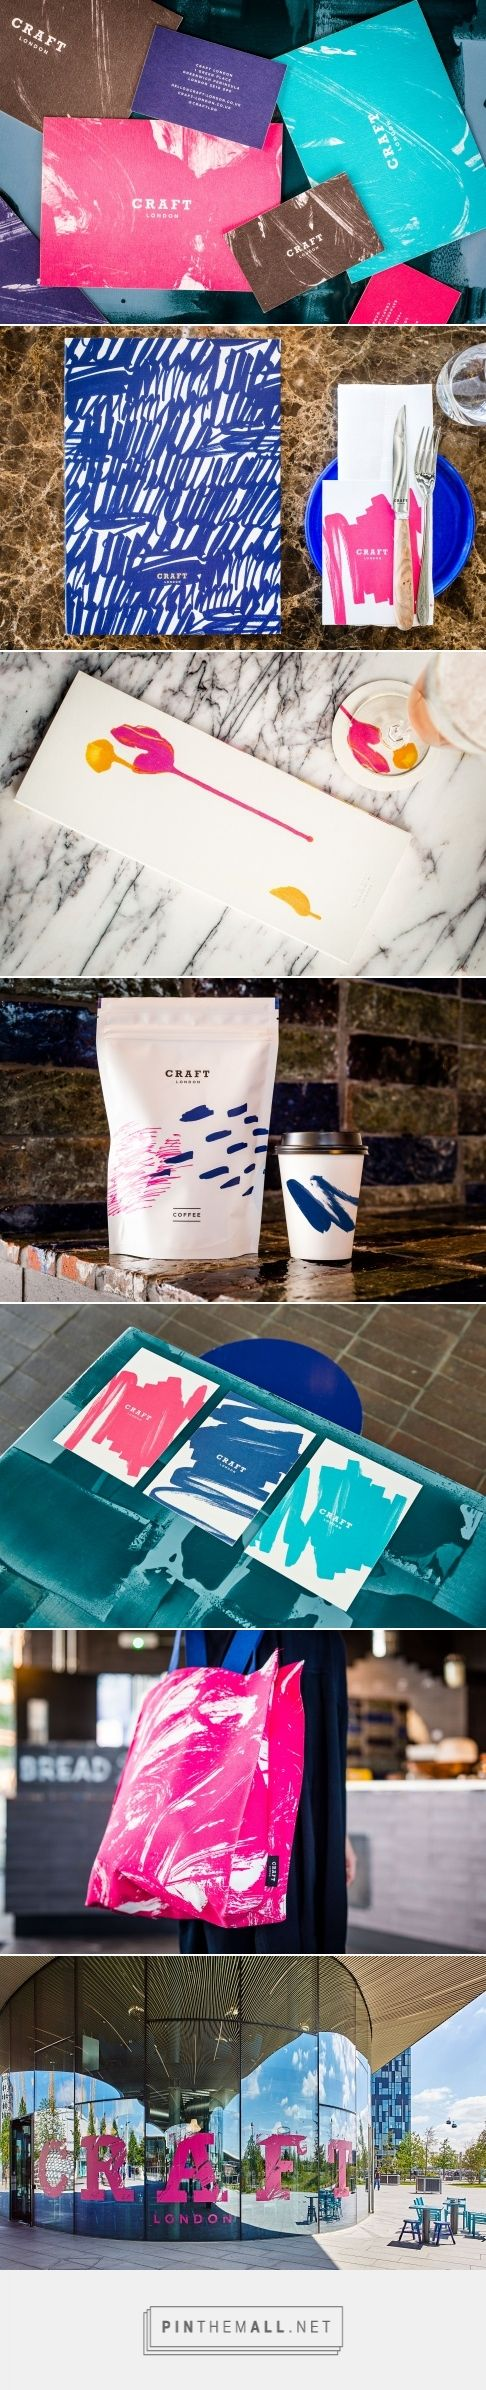 Identity, packaging and branding by Here Design for Craft London curated by…